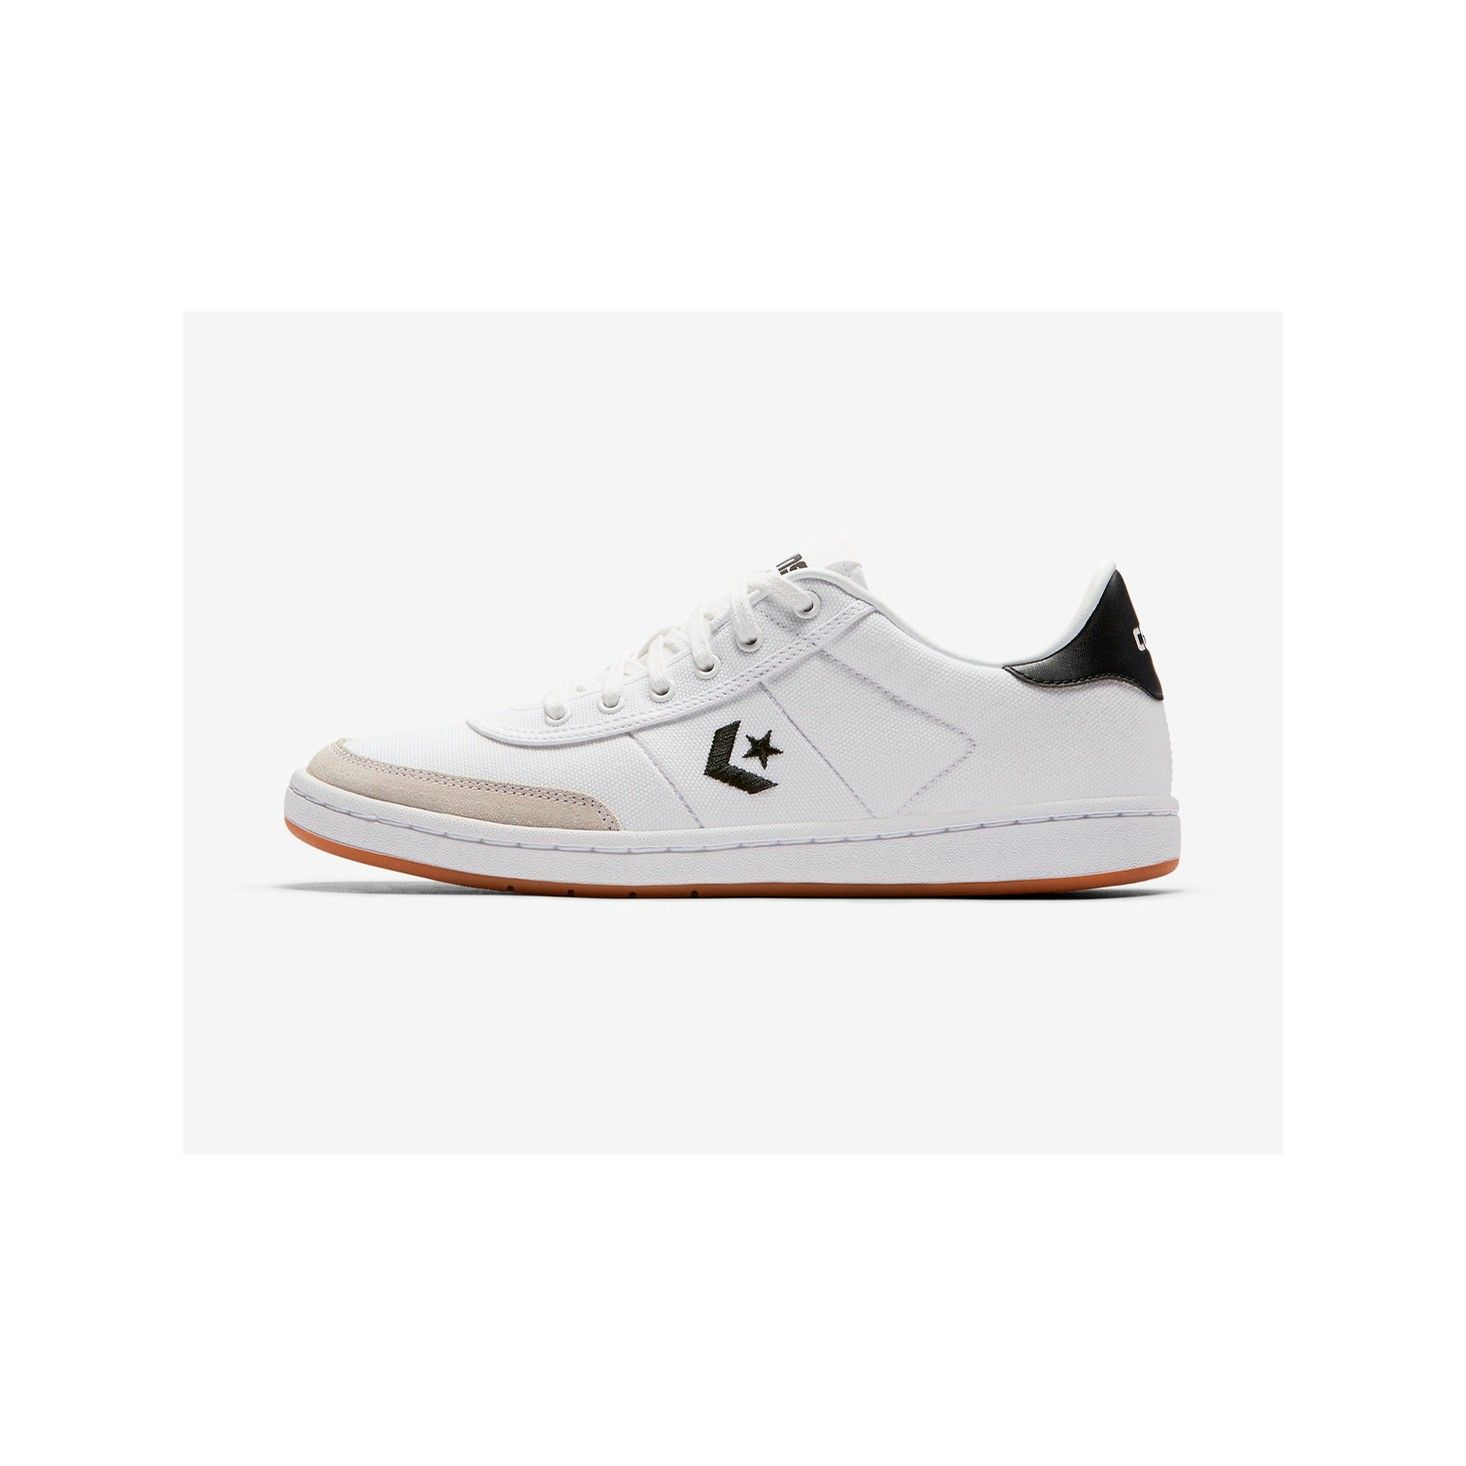 3398ca5be39e Converse Barcelona Pro Ox (White Black White) Shoes Cons at 35th North